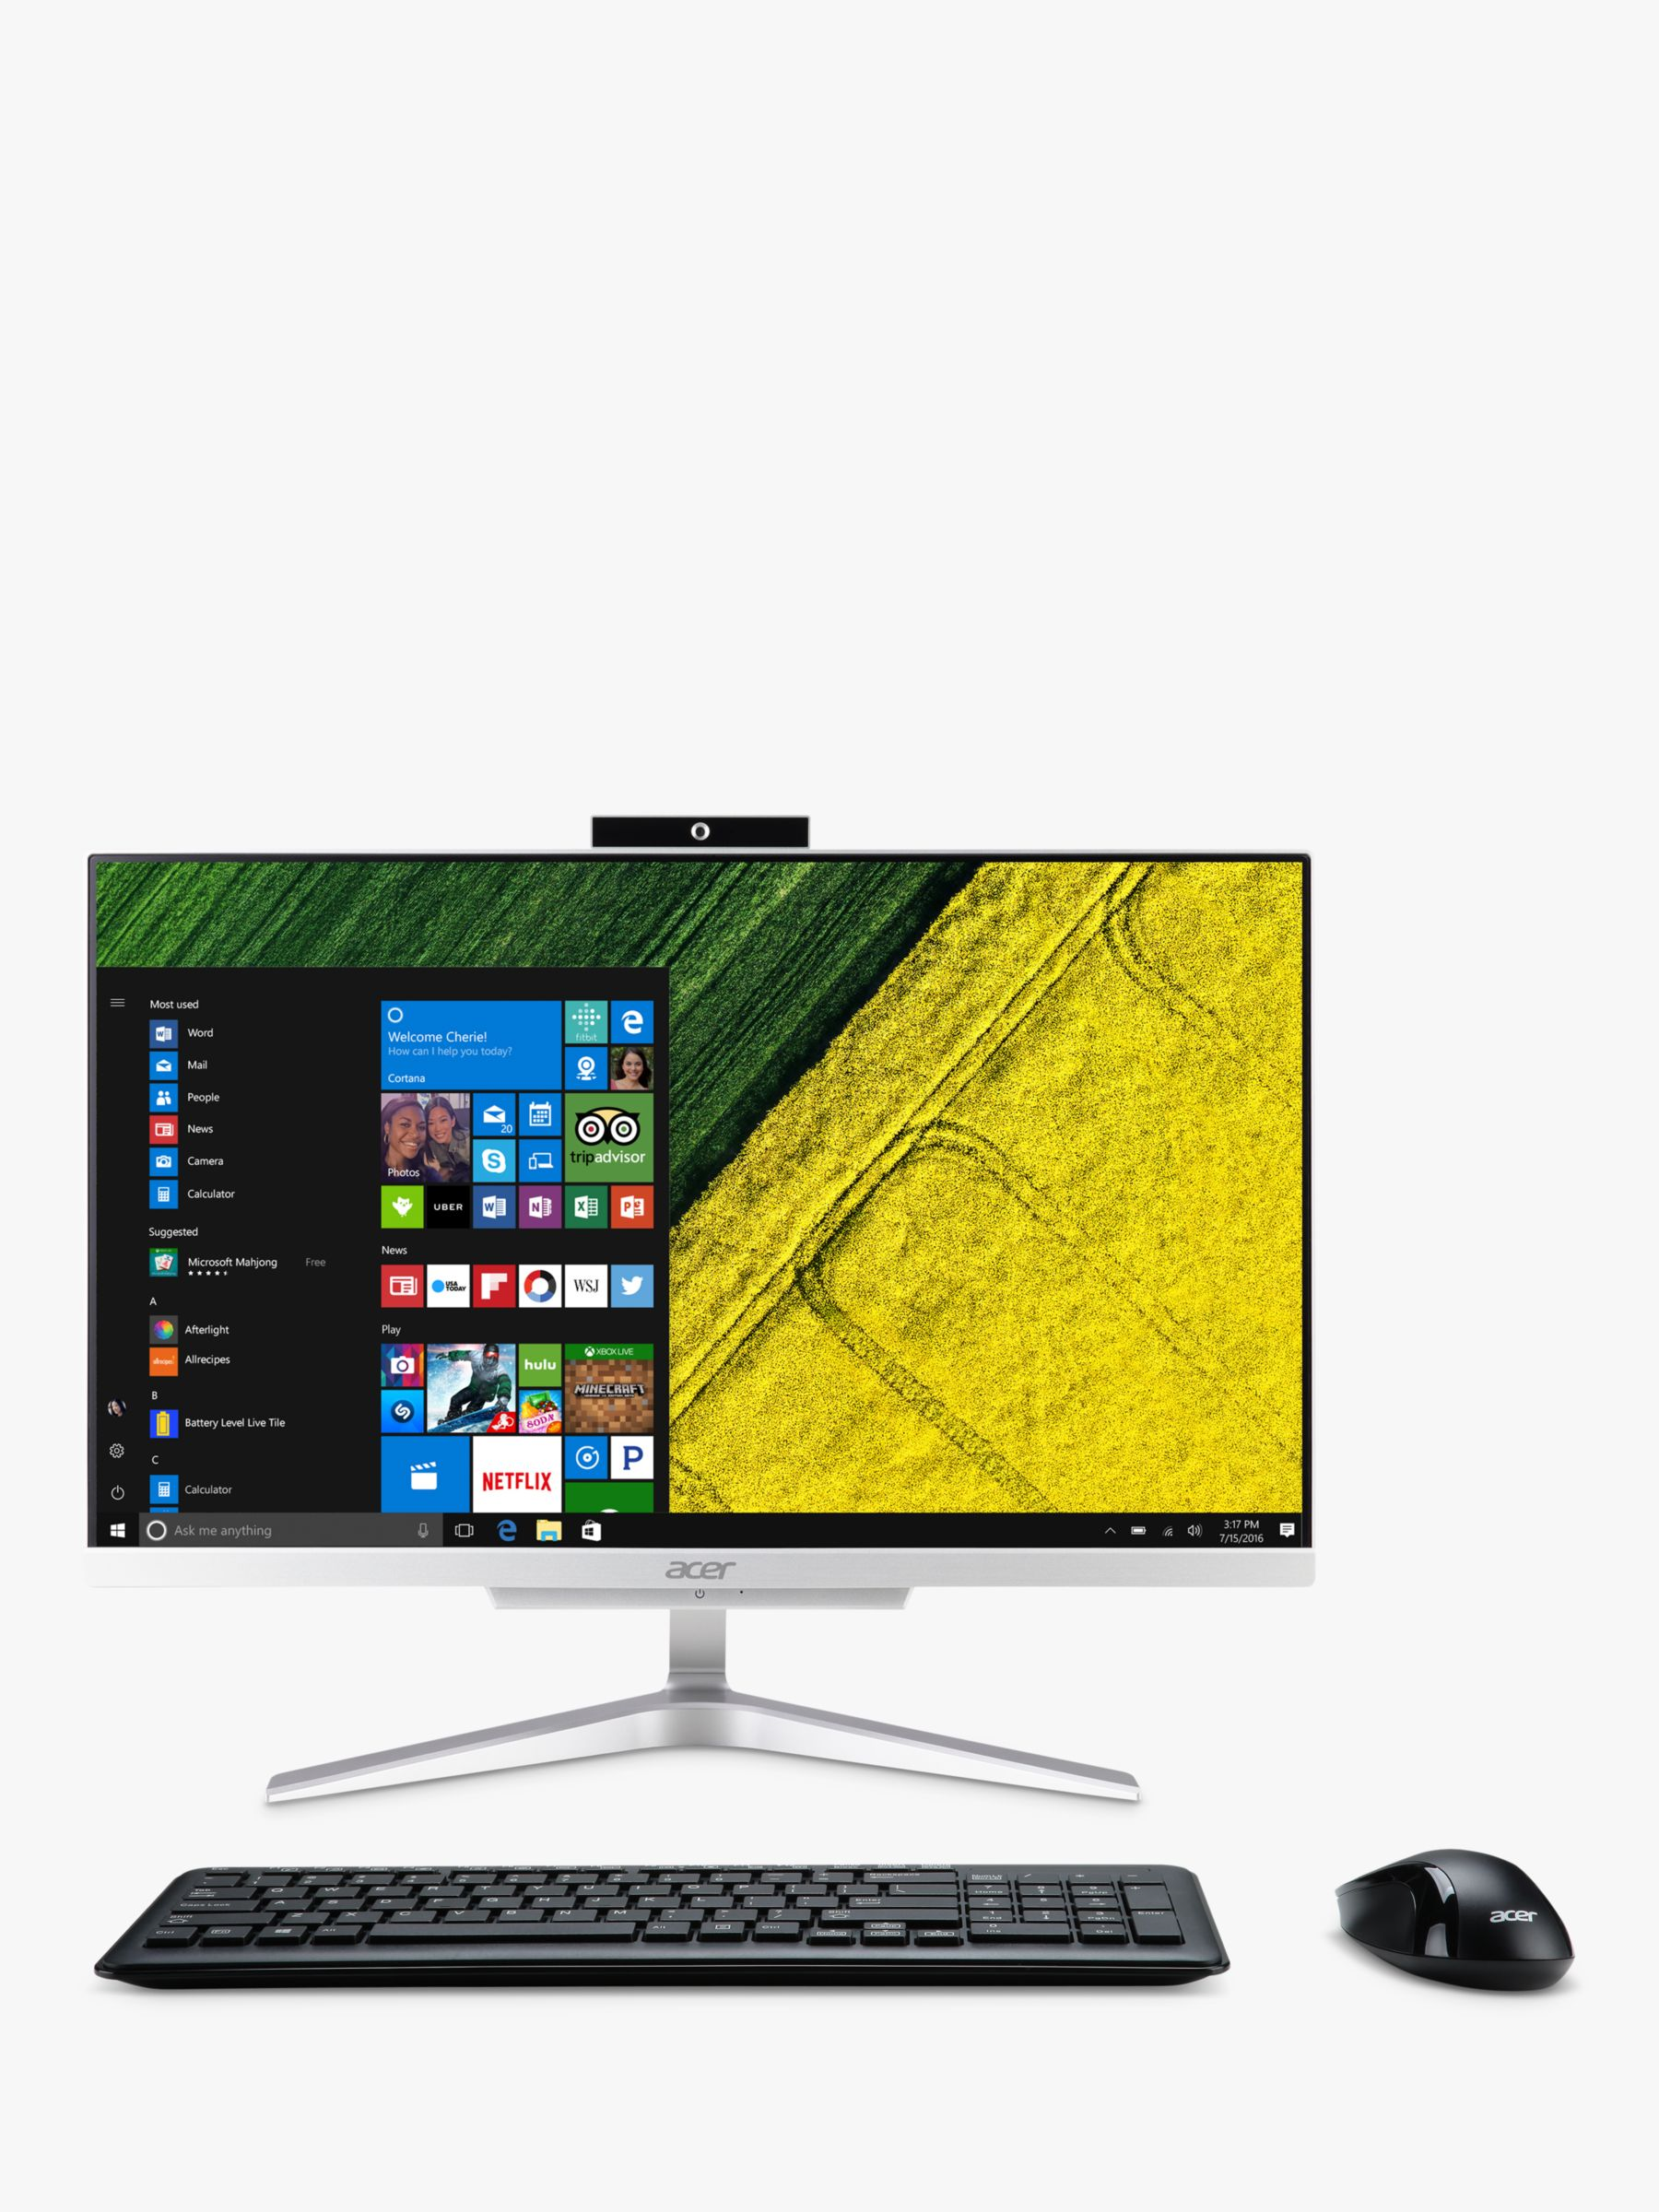 Acer Acer C22-320 All-in-One Desktop PC, AMD A9 Processor, 8GB RAM, 1TB HDD, 21.5 Full HD, Silver